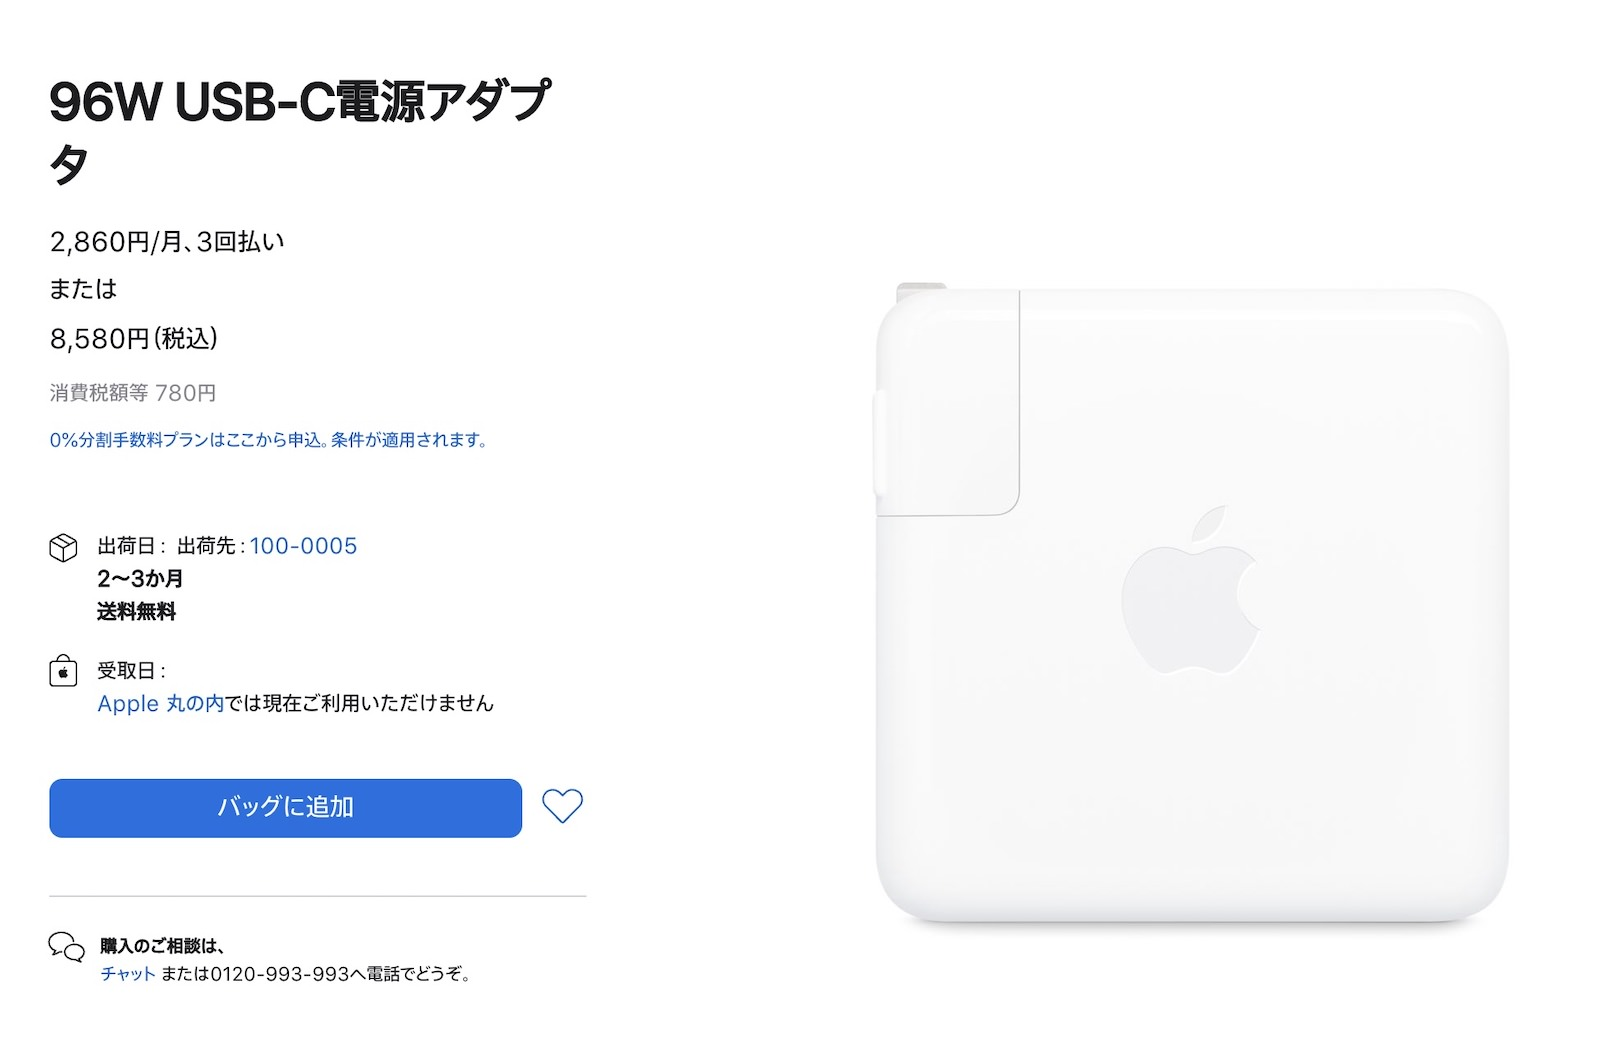 96w adaptor not available